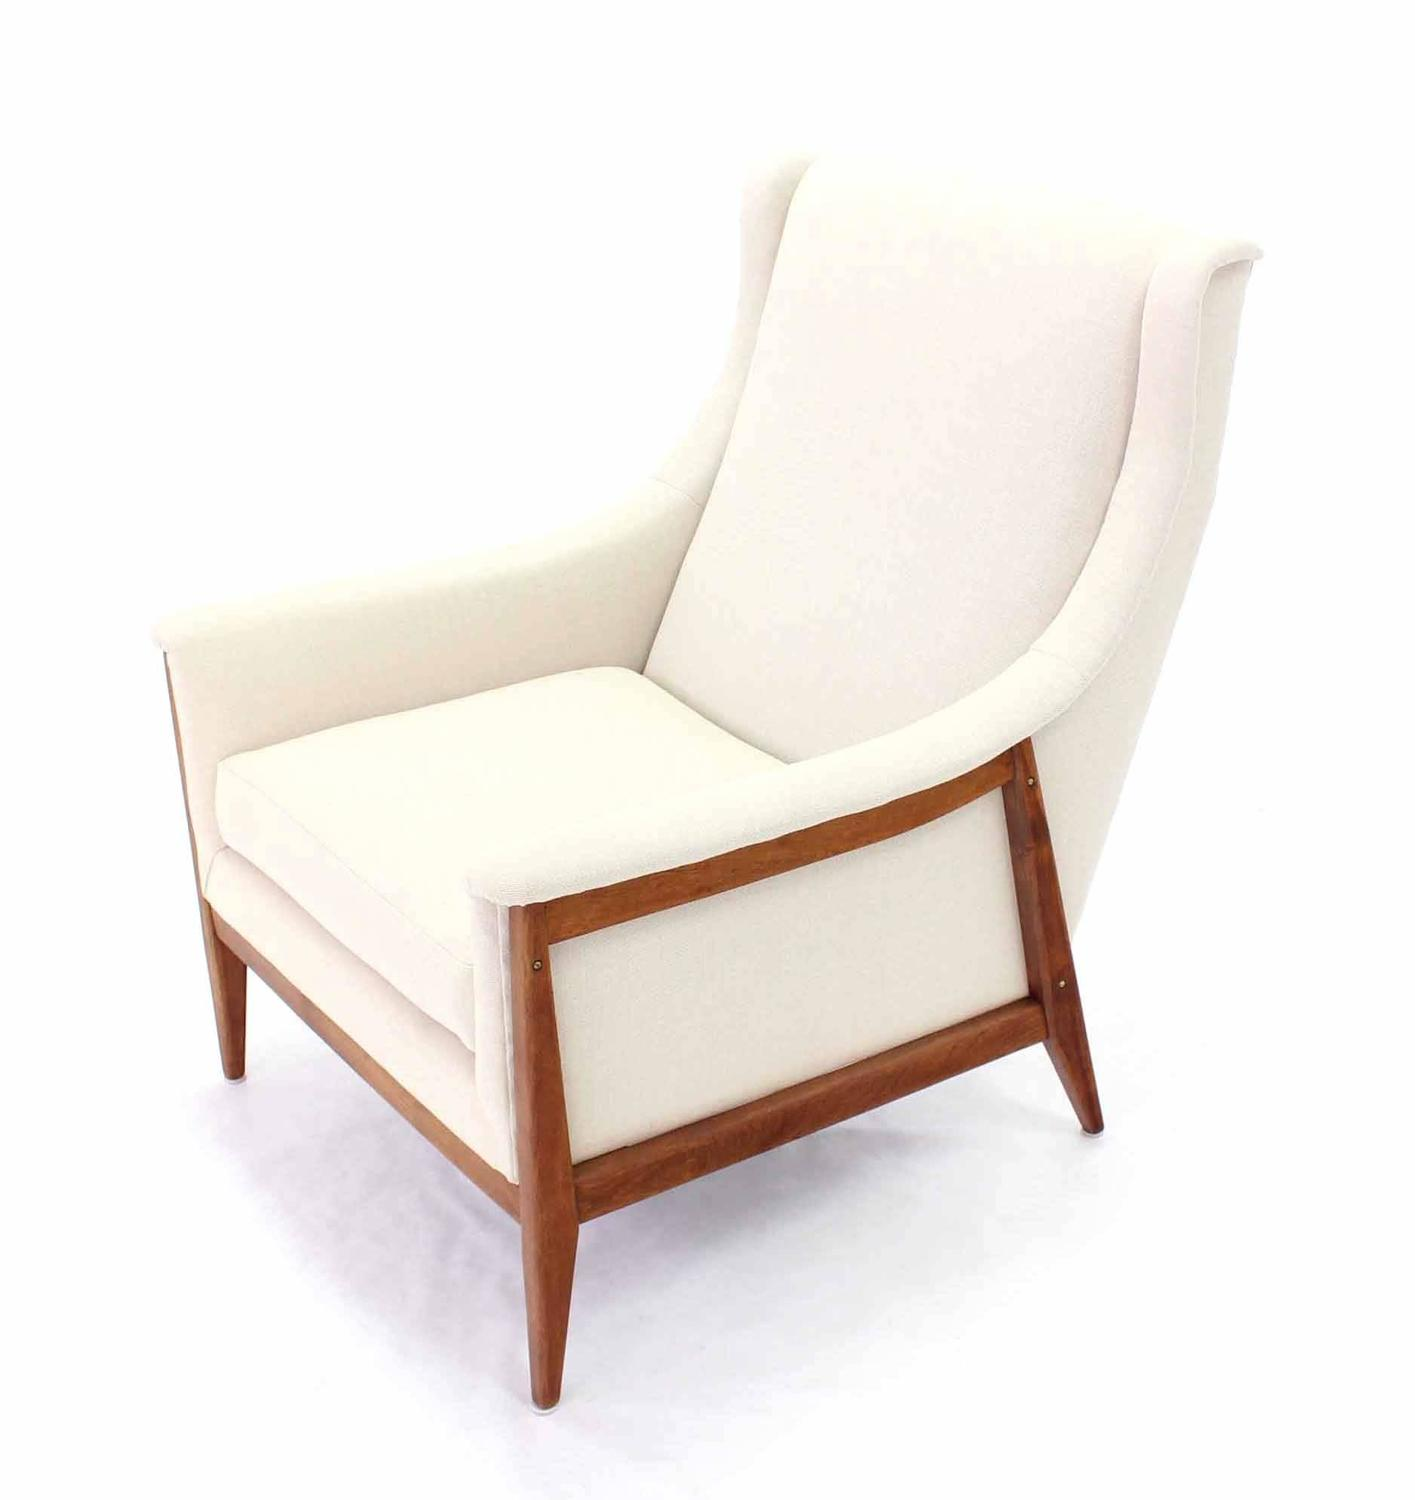 New Upholstery Danish Modern Lounge Chair and Ottoman at 1stdibs